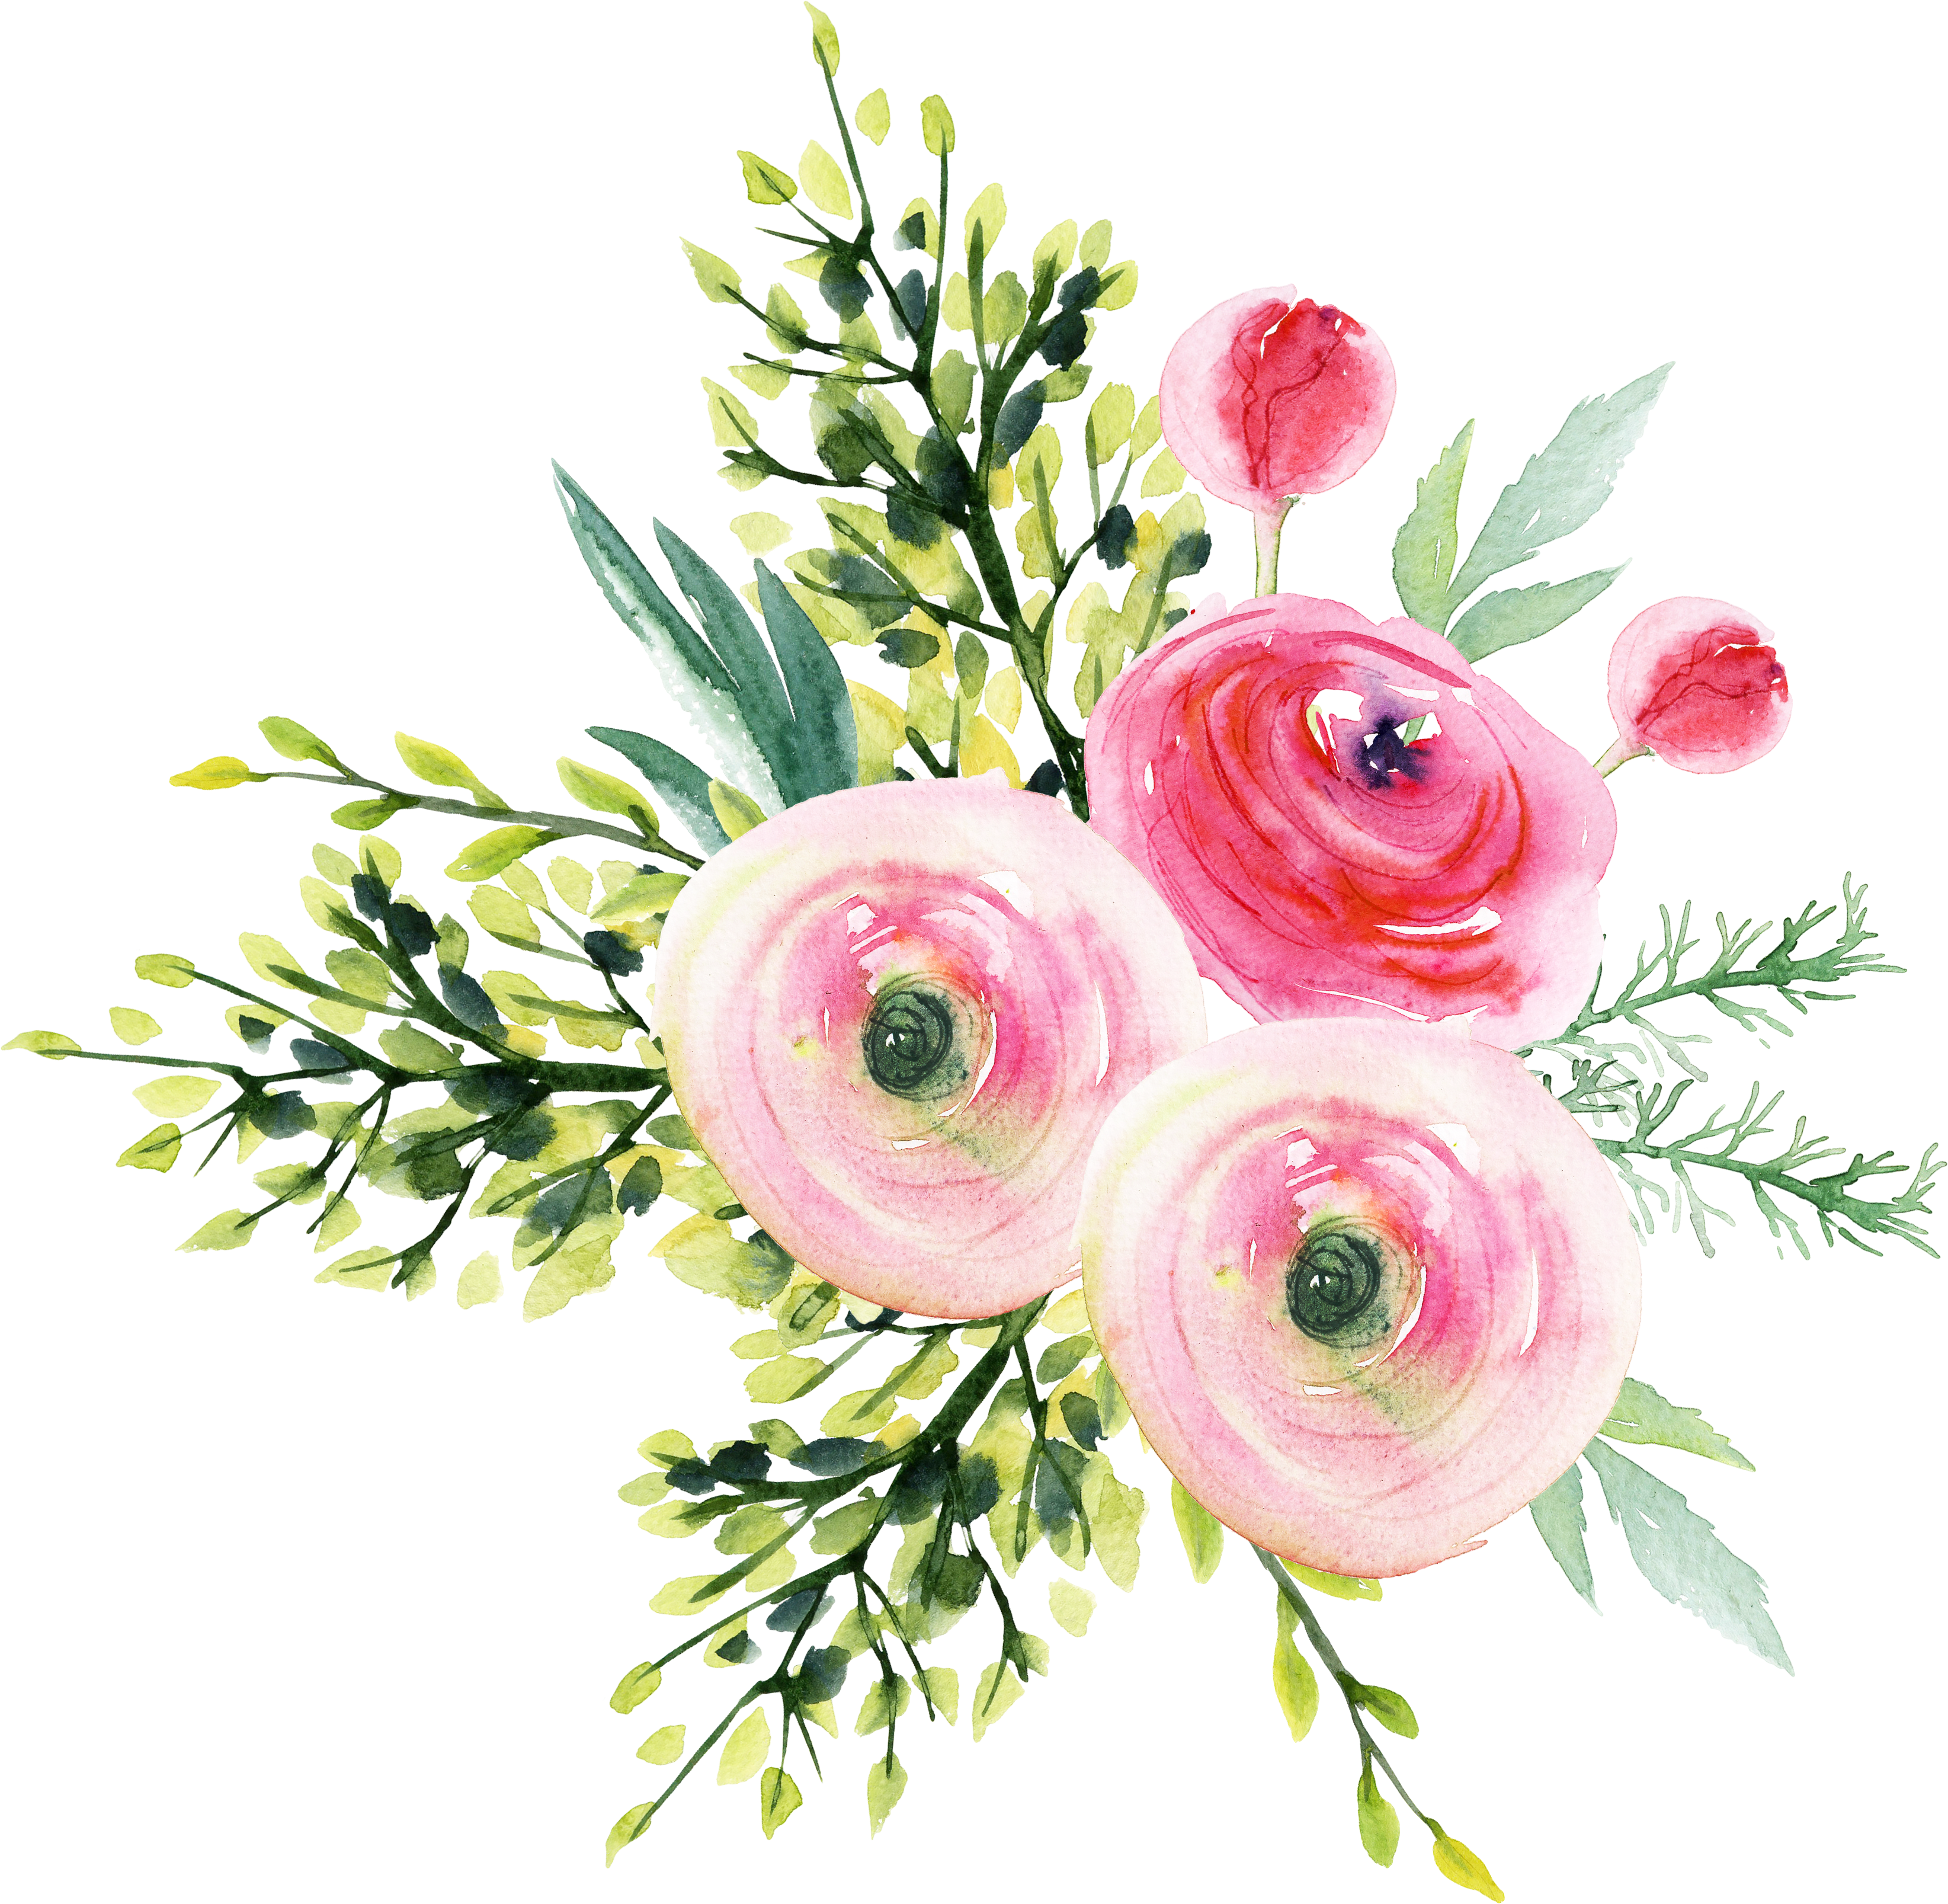 Garden roses bouquet refined. Aesthetic flower png